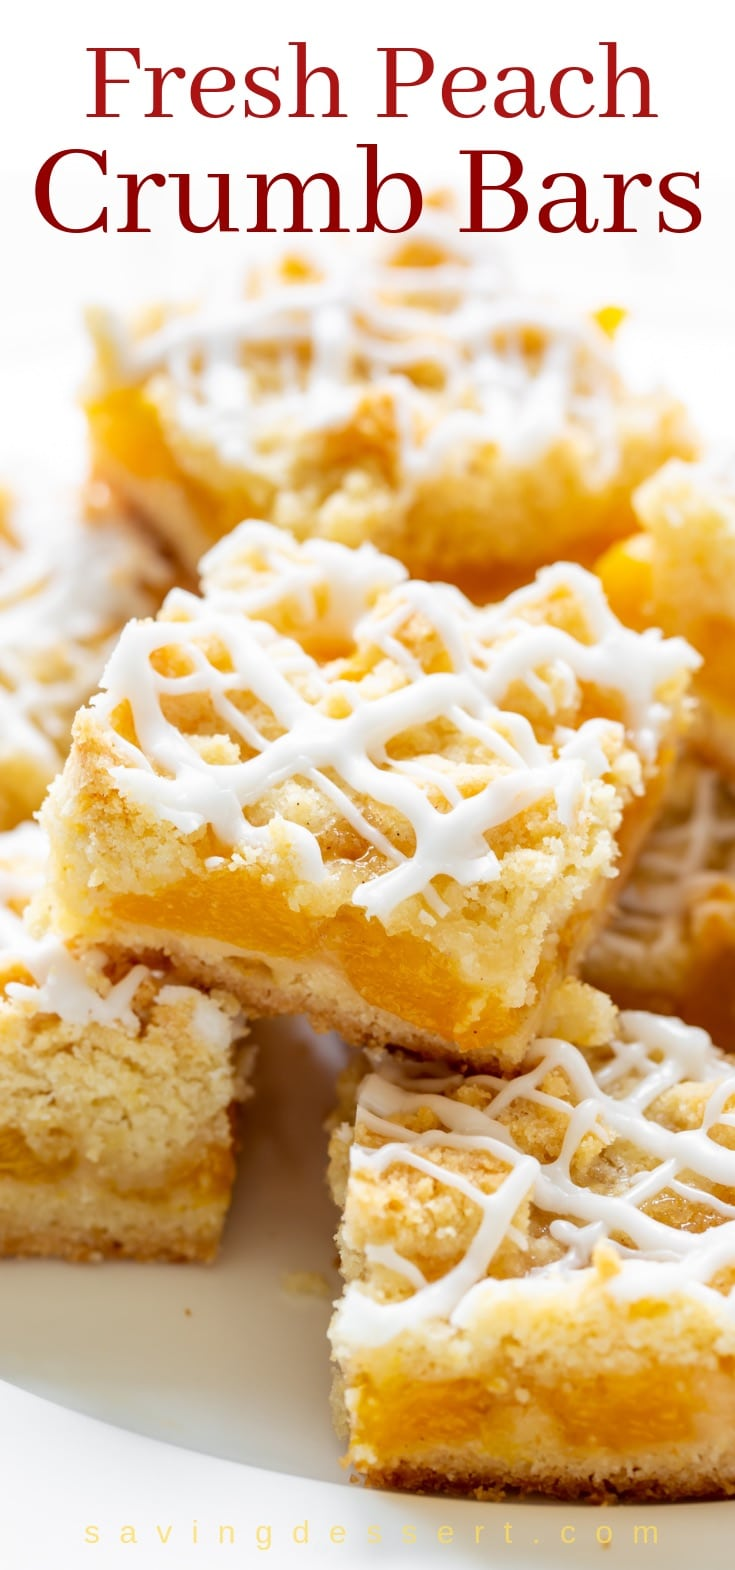 A plate stacked with fresh peach crumb bars drizzled with icing